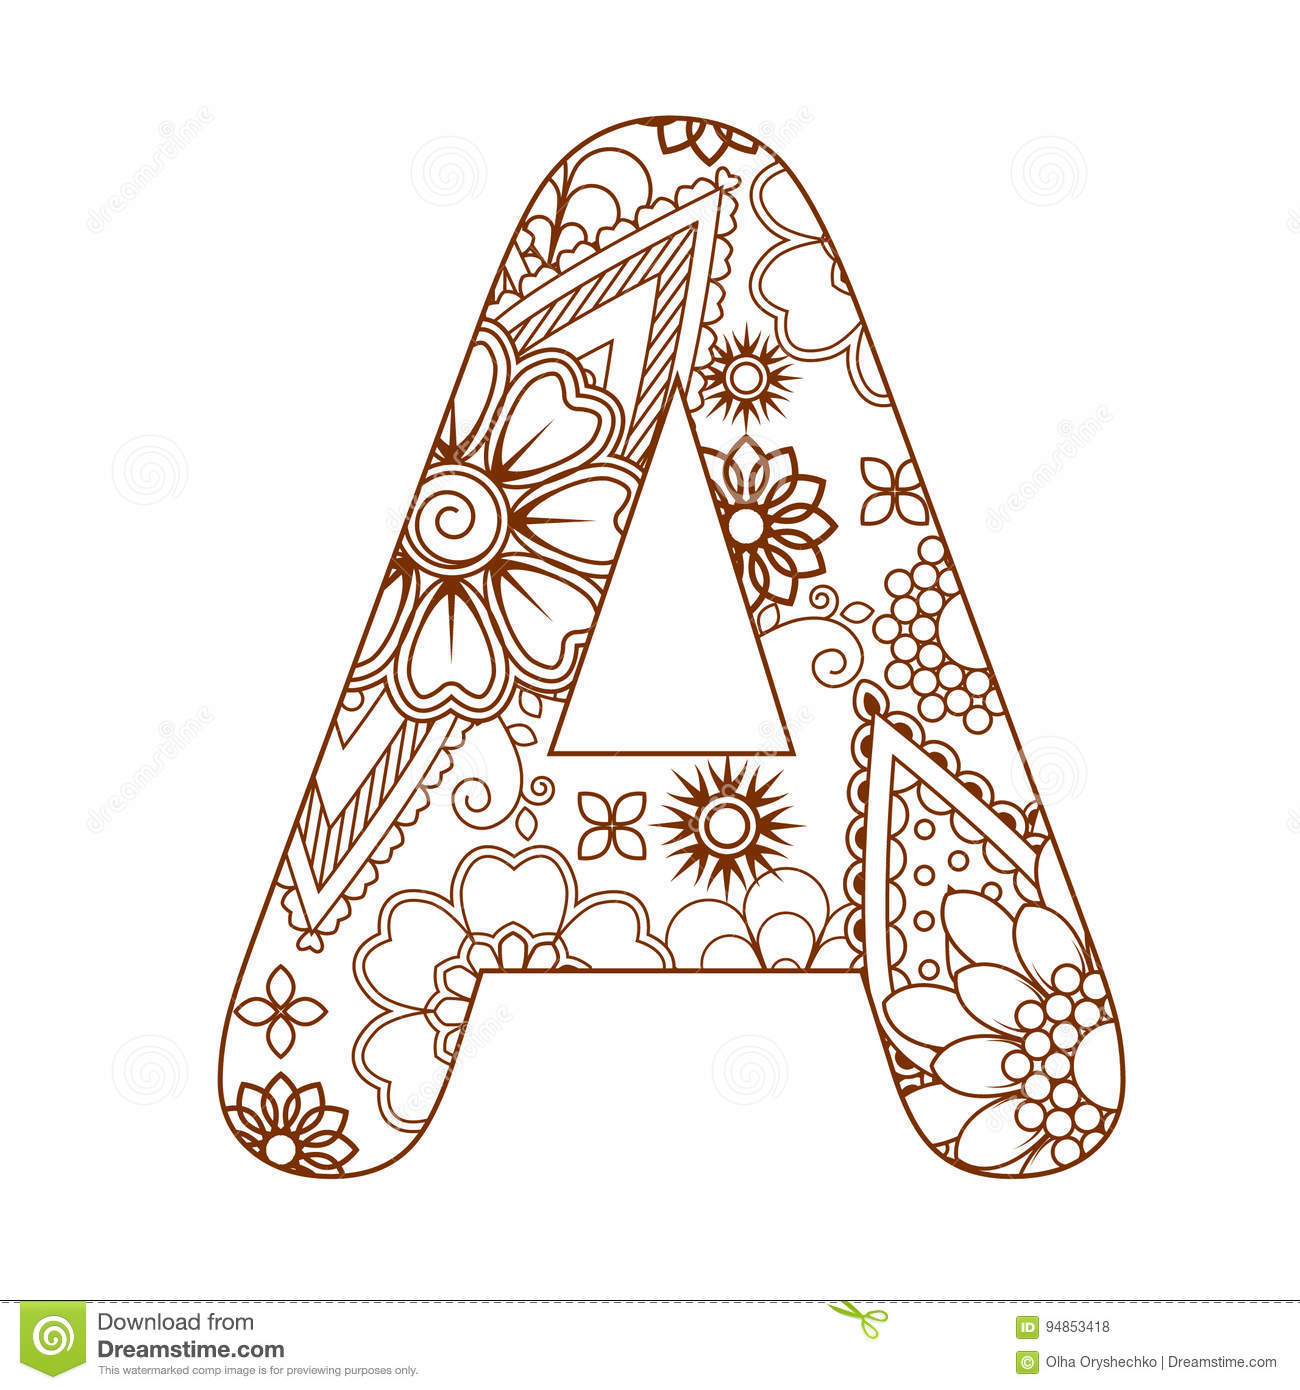 Adult Coloring Page With A Letter A Of The Alphabet